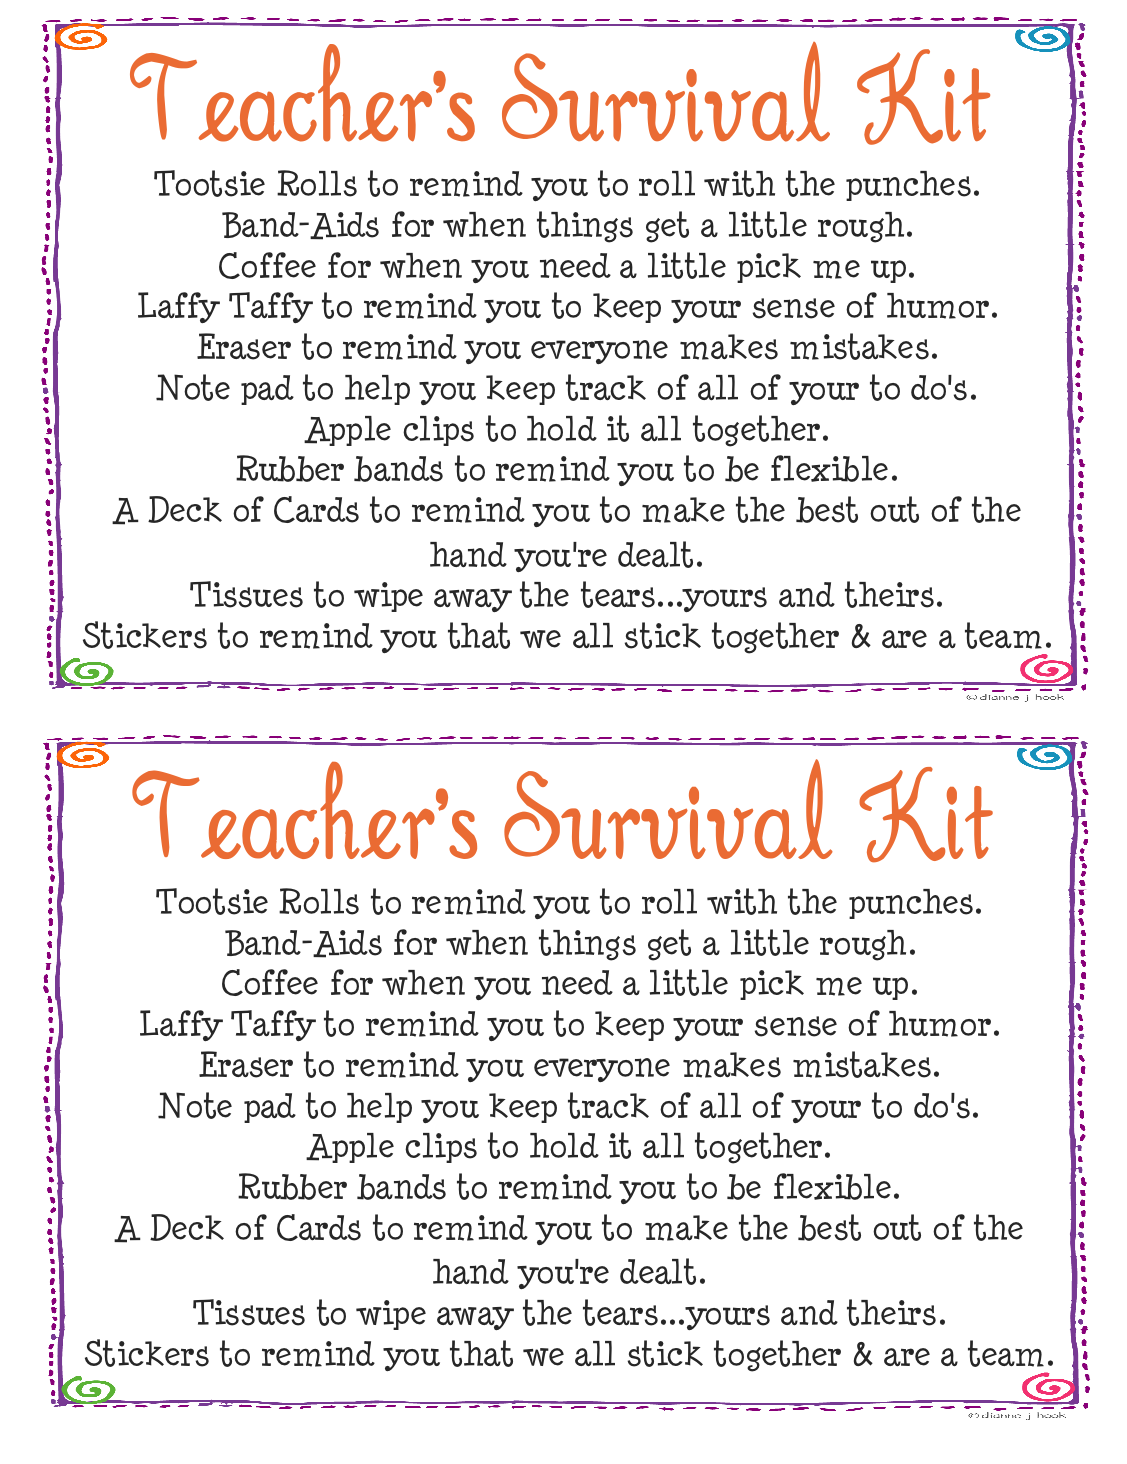 Humorous Survival Kits for Teachers | Teacher's Survival Kit